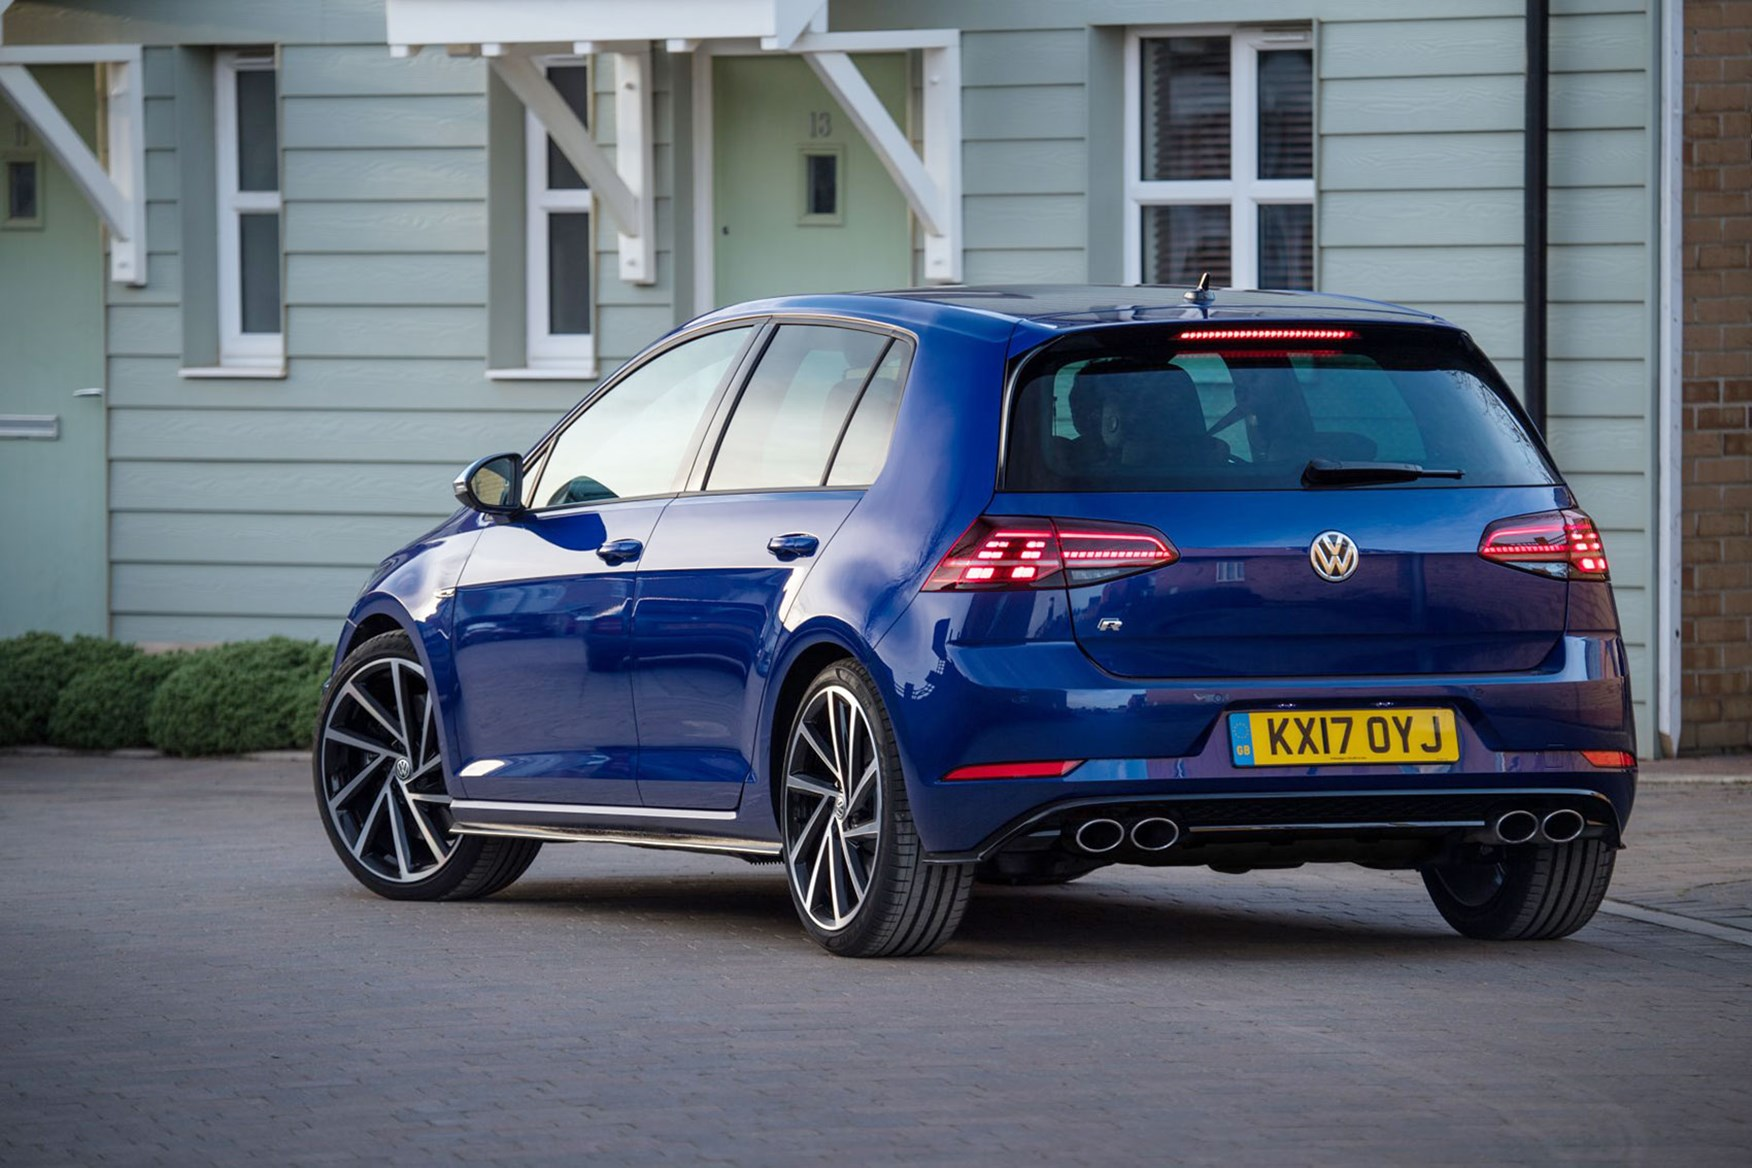 Vw Gti 2018 Release Date >> VW Golf R (2017) review by CAR Magazine